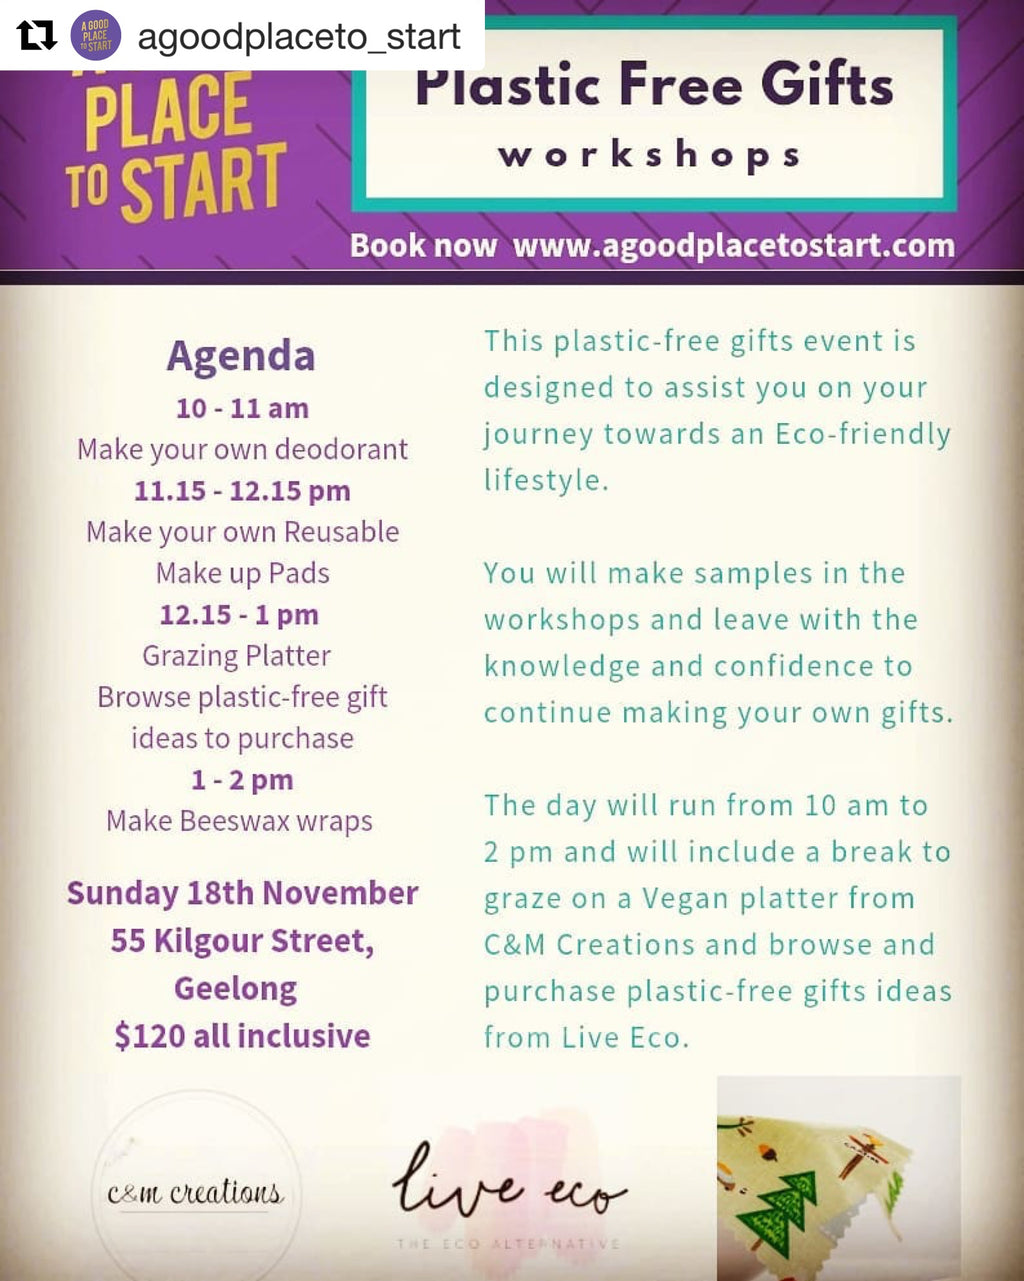 Plastic Free Gifts Workshop